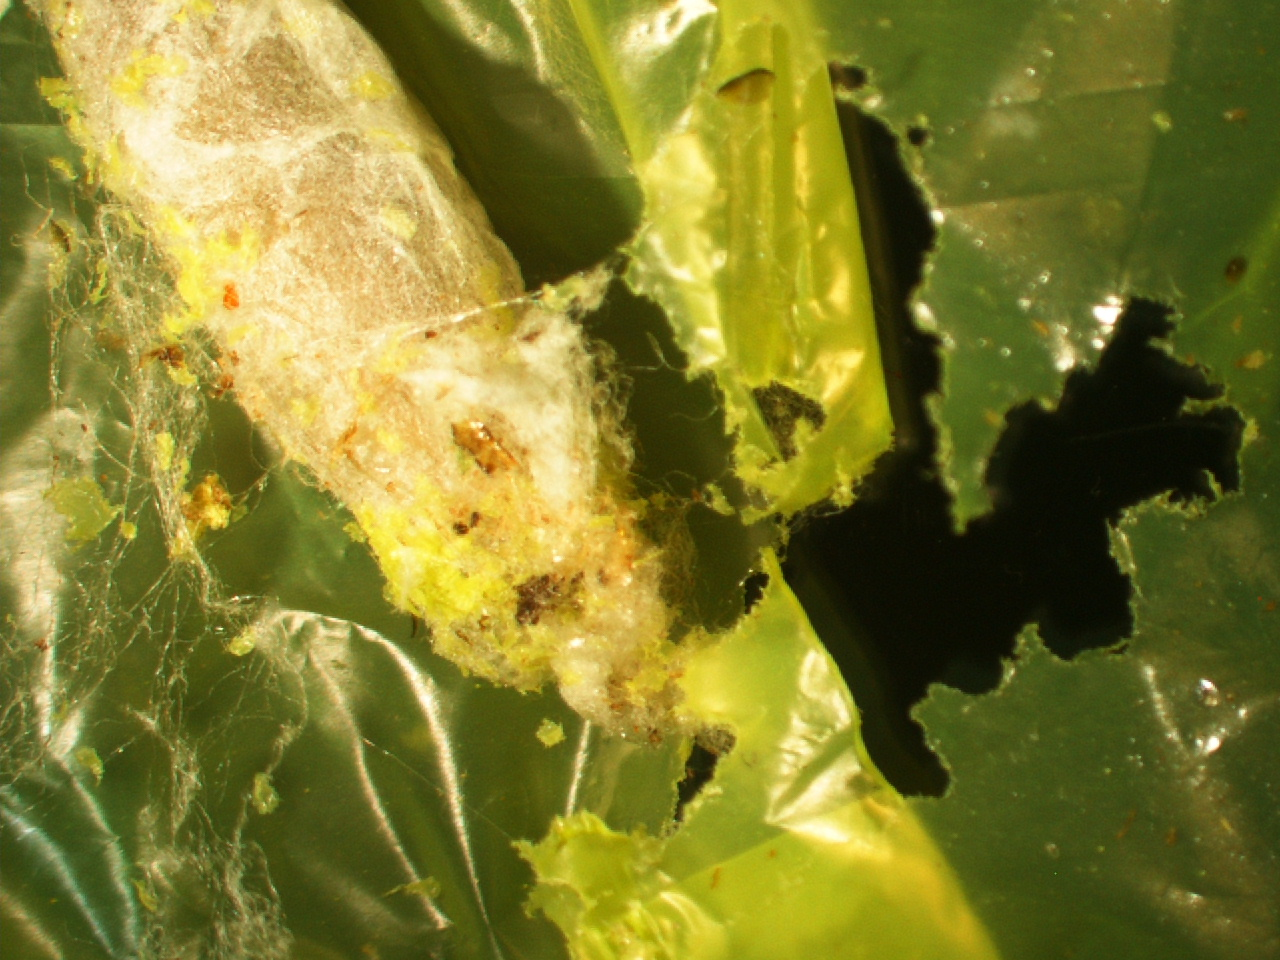 Wax worm may answer problem of plastic waste